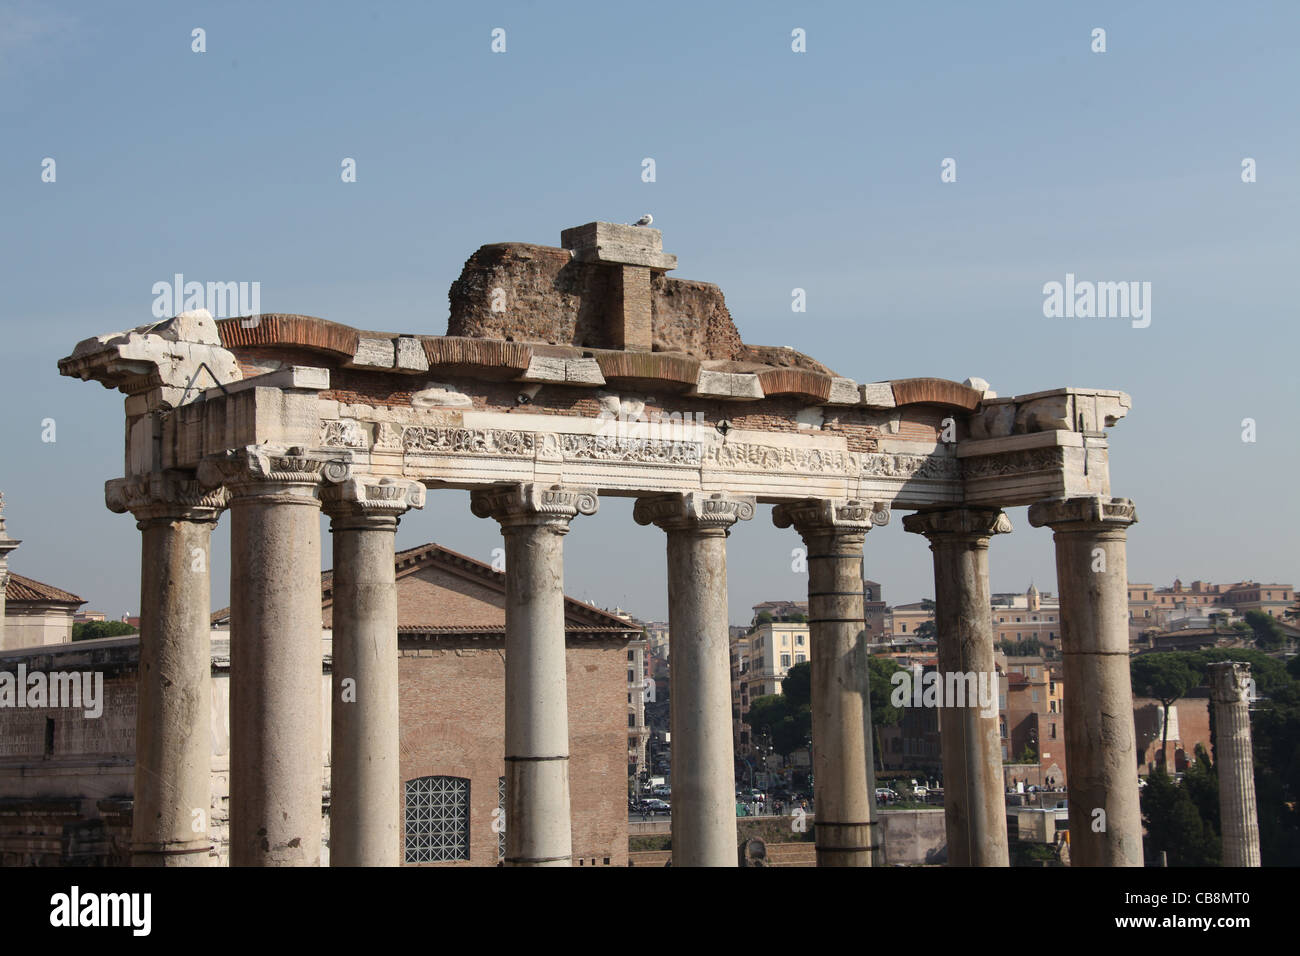 Temple of Saturn in Rome - Stock Image